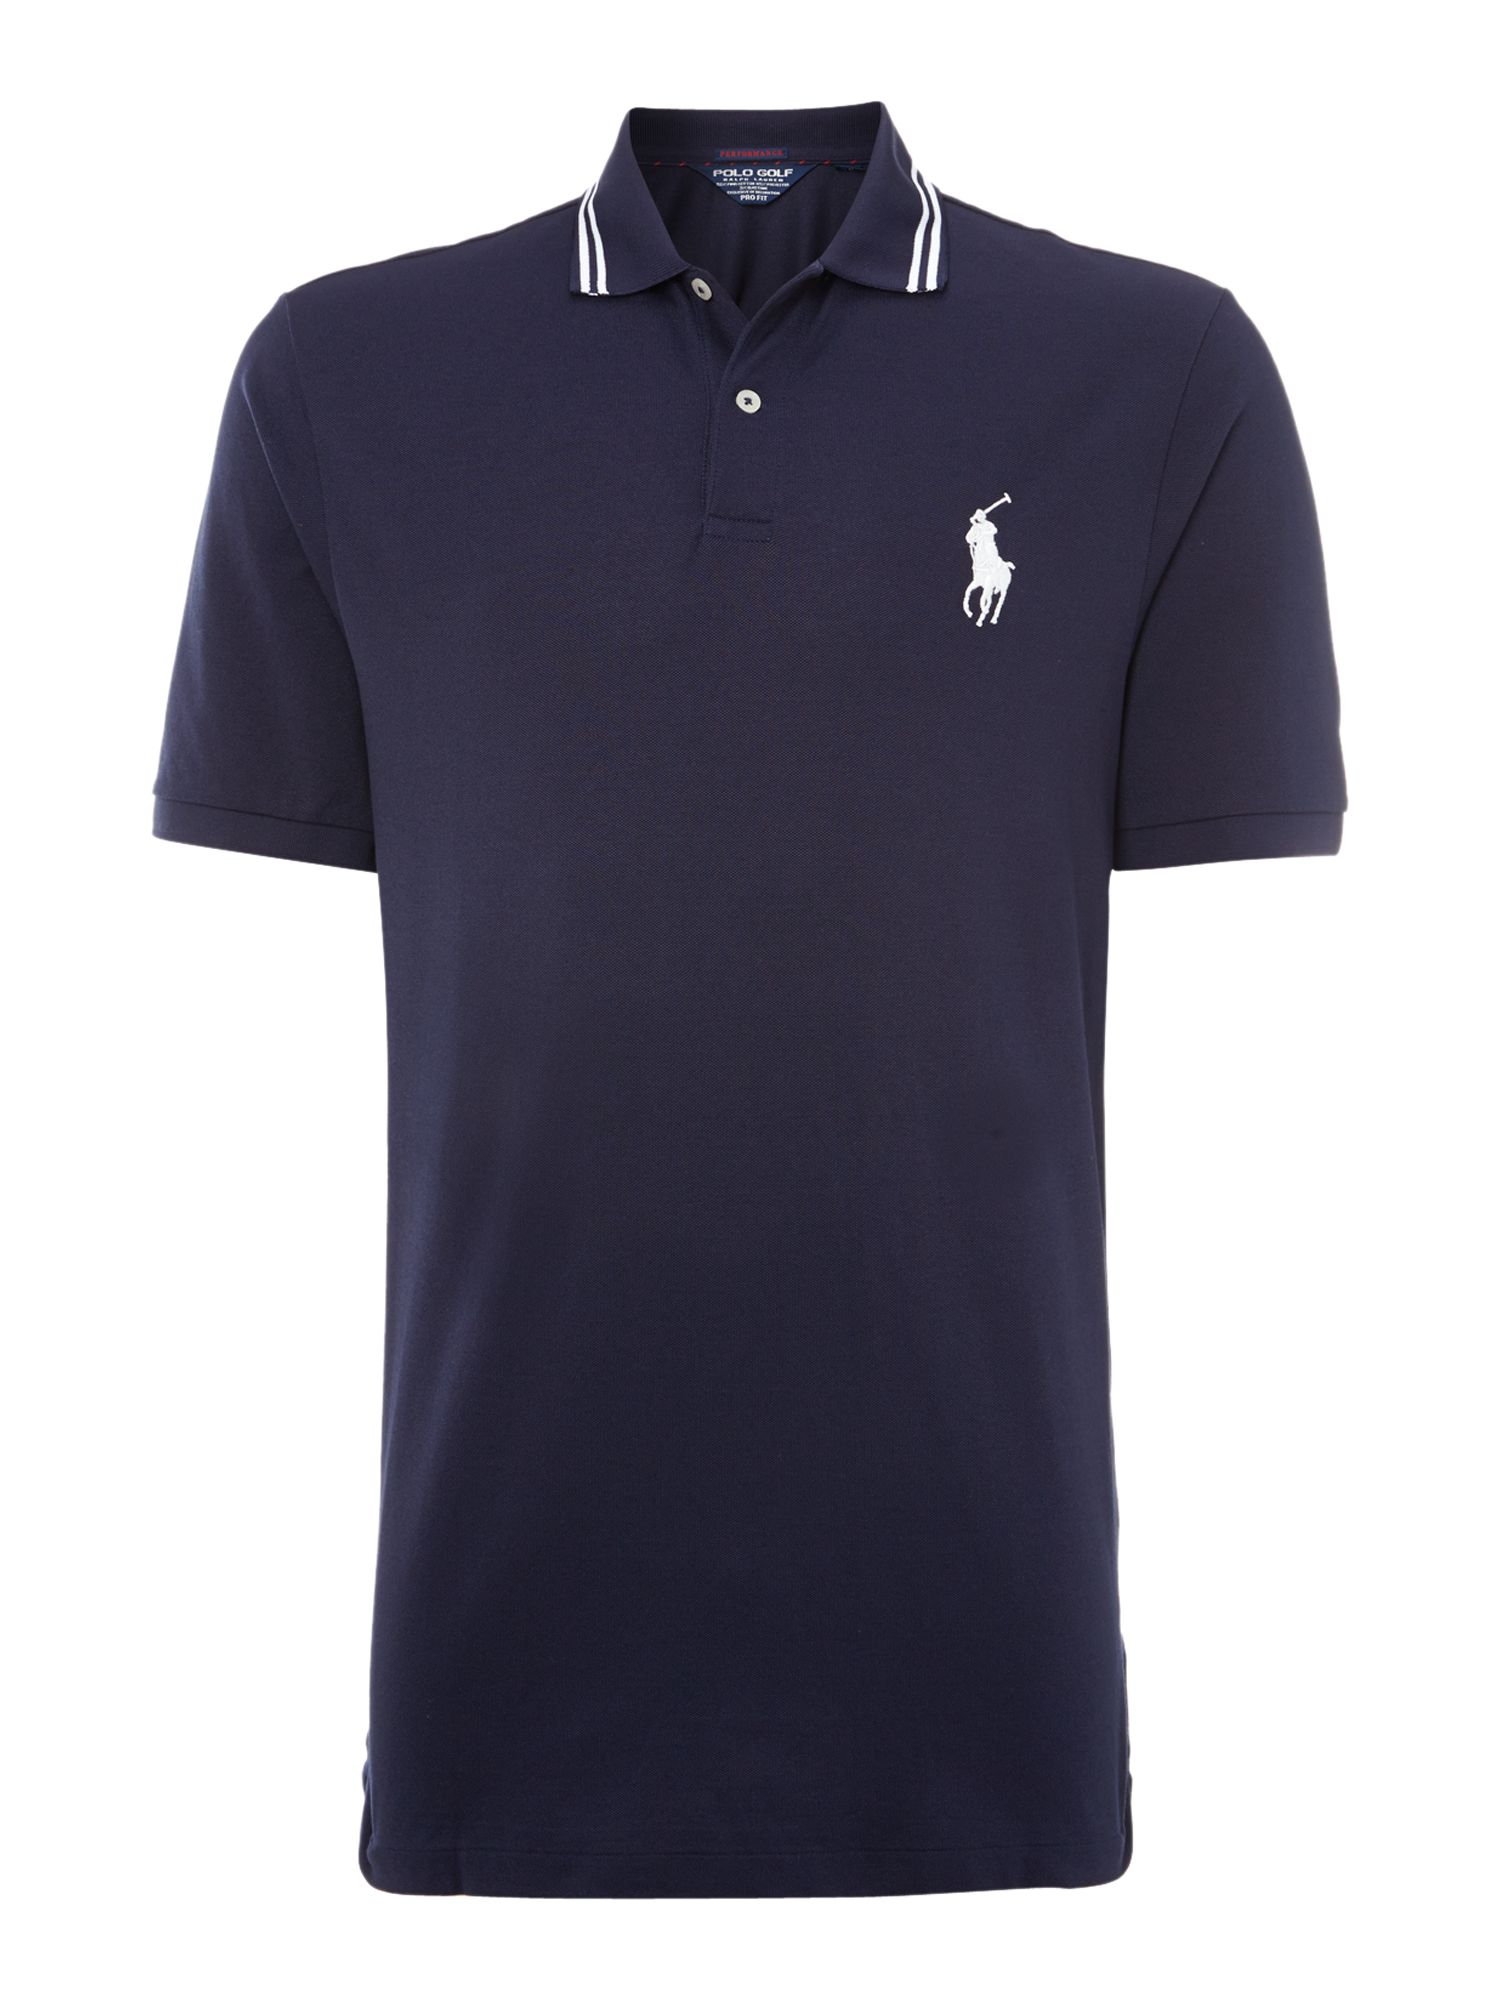 Tipped collar pro fit polo shirt